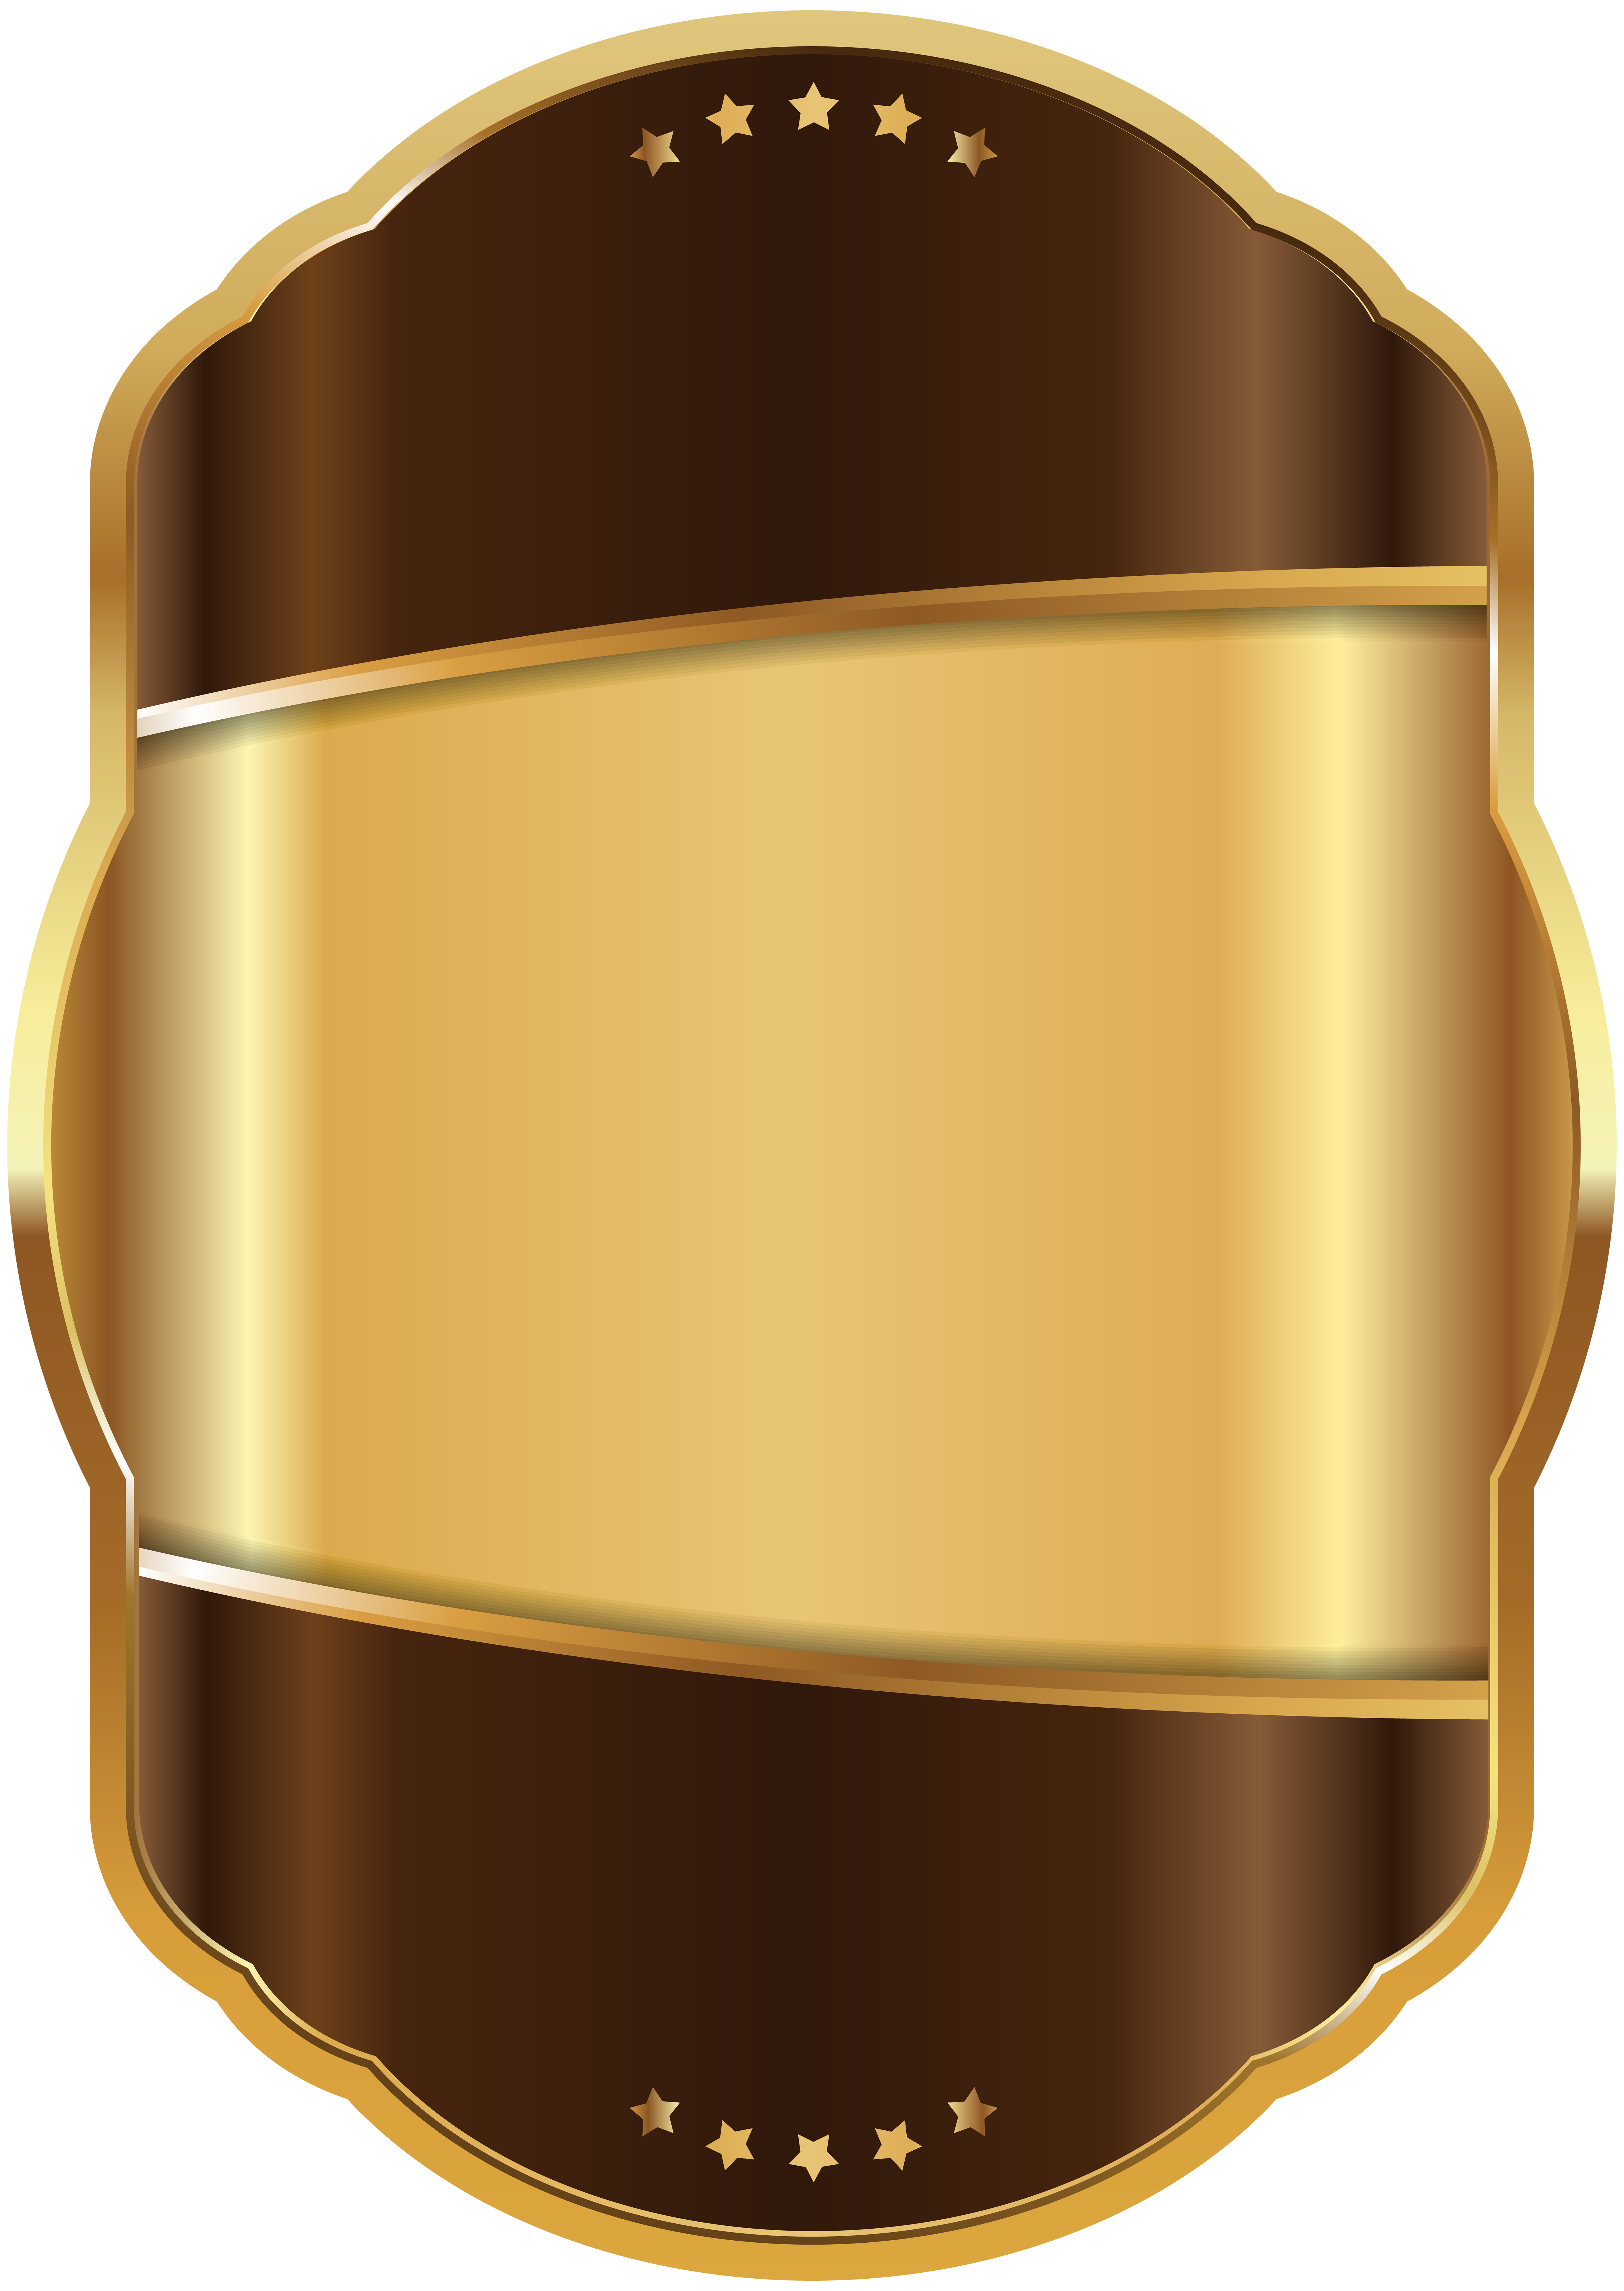 Label clipart brown. Template gold clip art